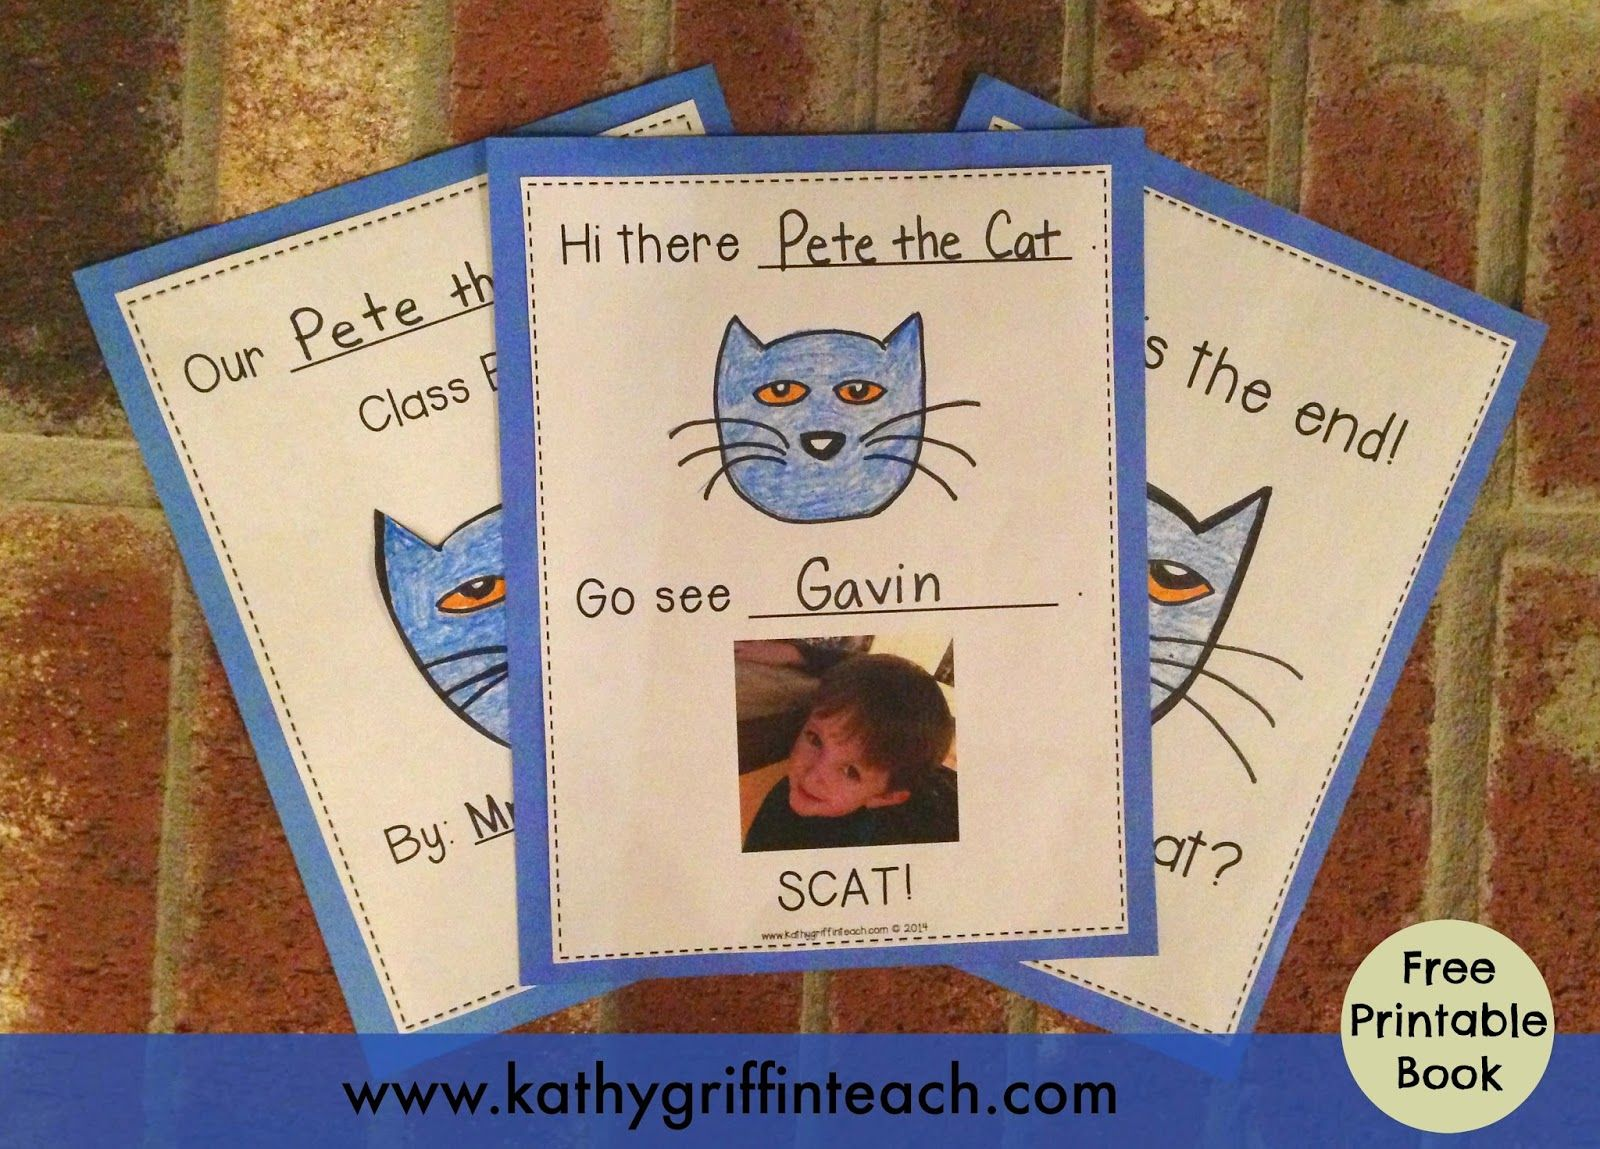 Free Printable To Make This Cute Book It Also Has A Whole Group Game To Play With It Too